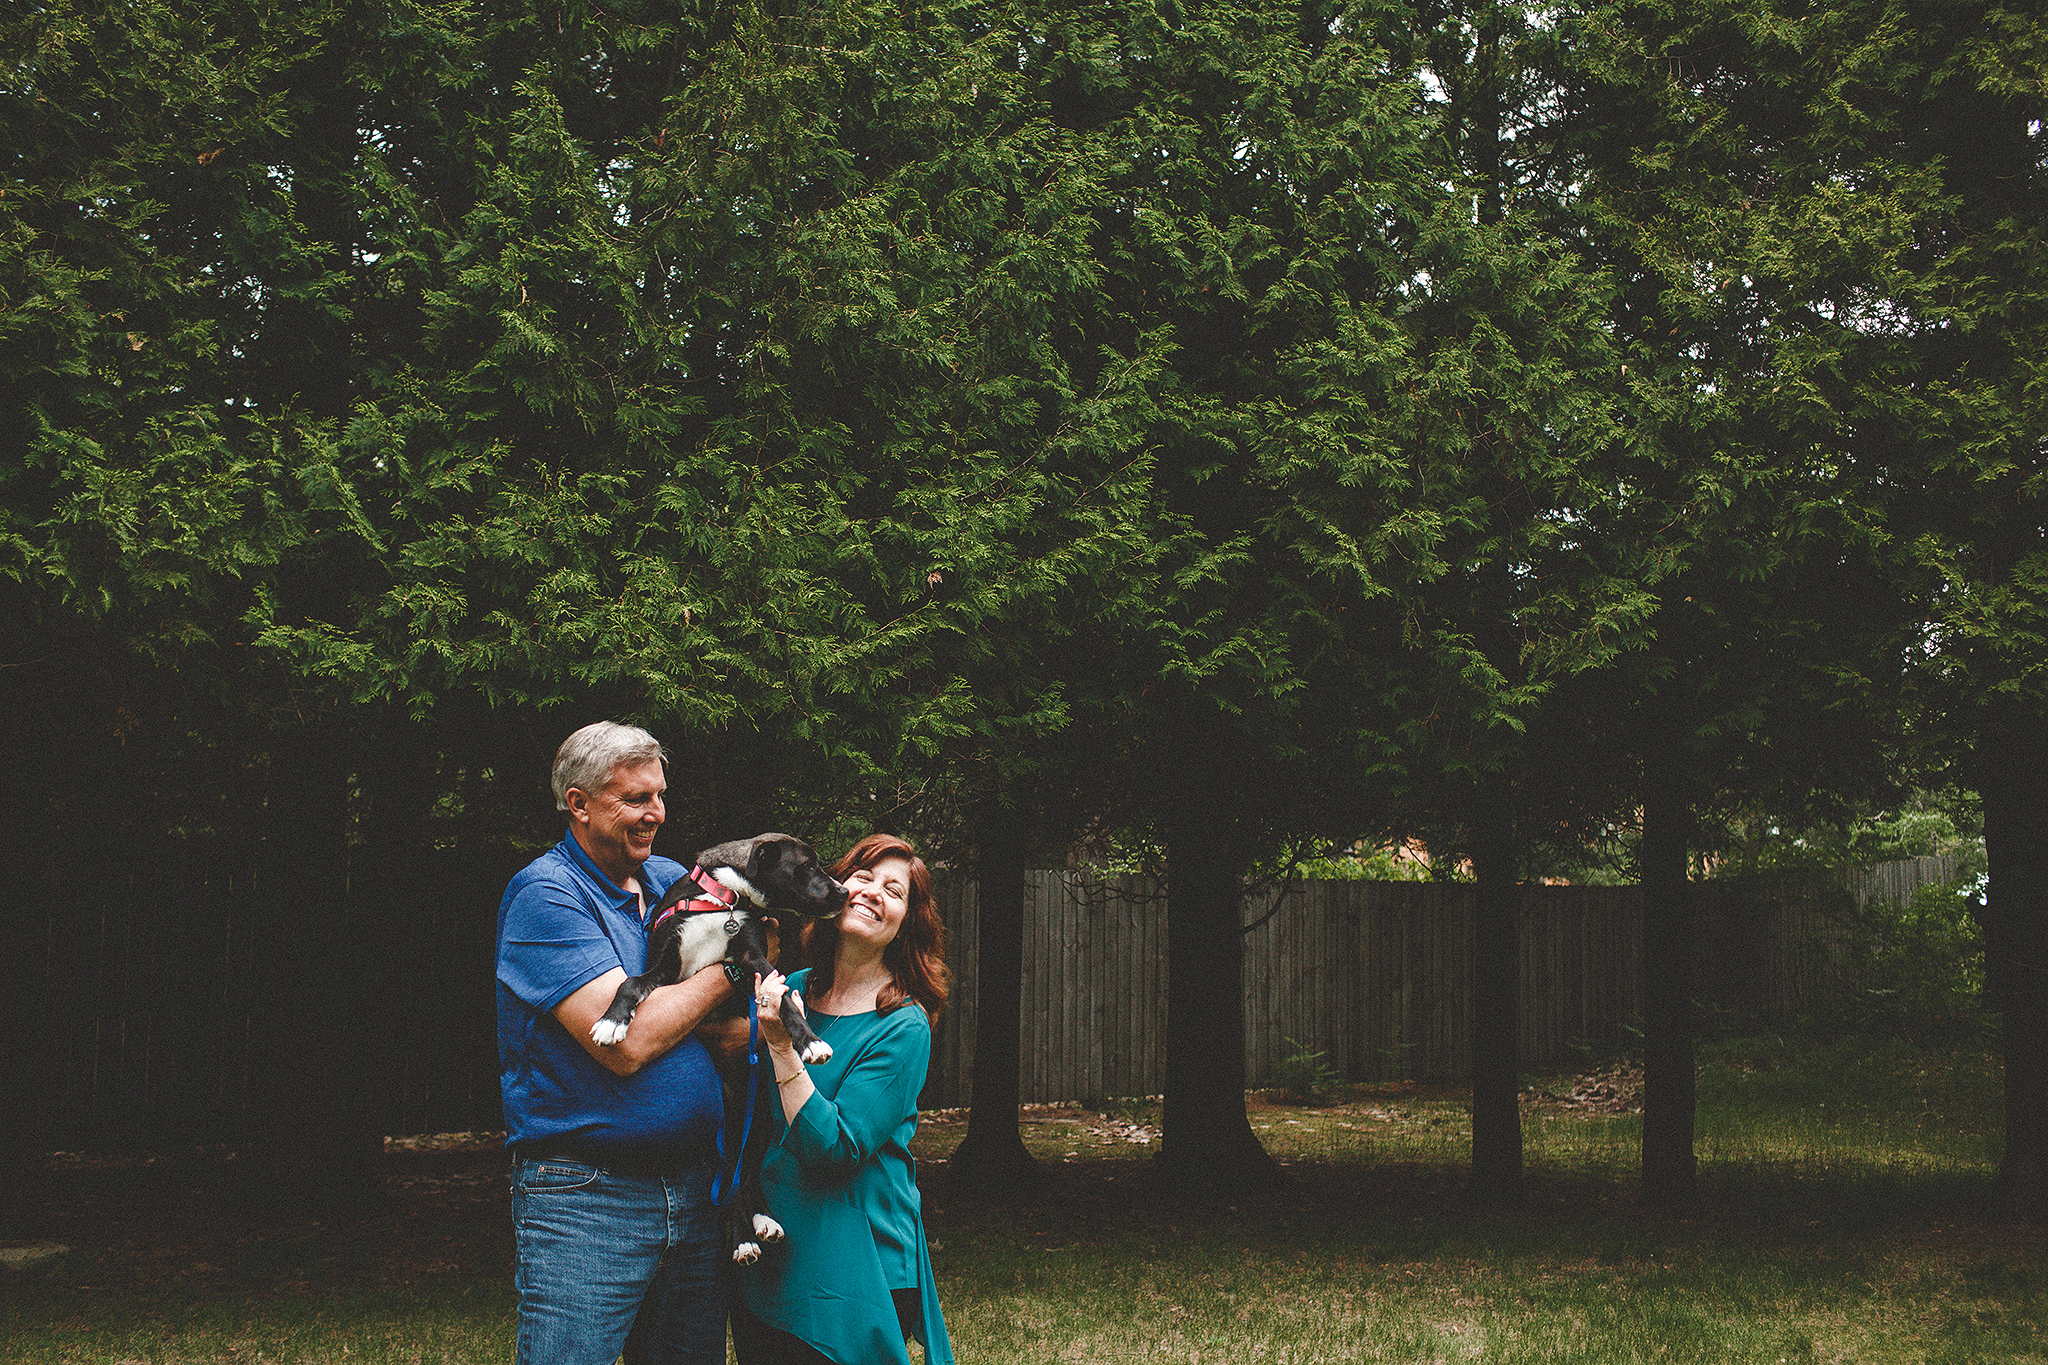 Mature couple laughing & holding dog in the forest | Sheboygan, WI photographer | Chrissy Deming photography